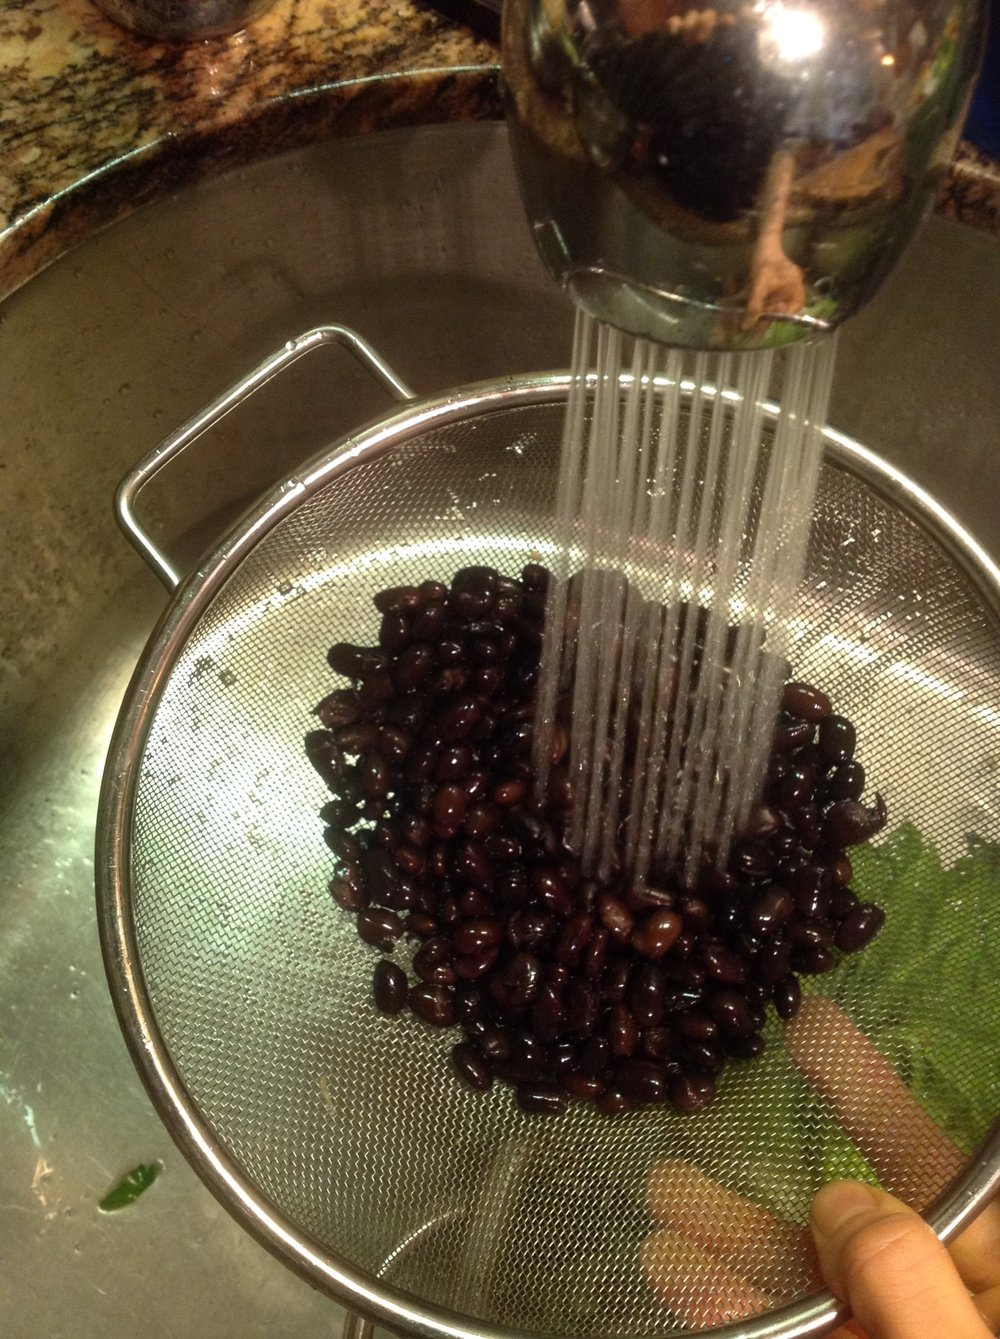 Chef's Cooking Tip: Always be sure to thoroughly rinse canned beans.  This will bring the ultimate flavor to this healthy, plant-based, oil-free vegan Black Bean Guacamole Salad recipe